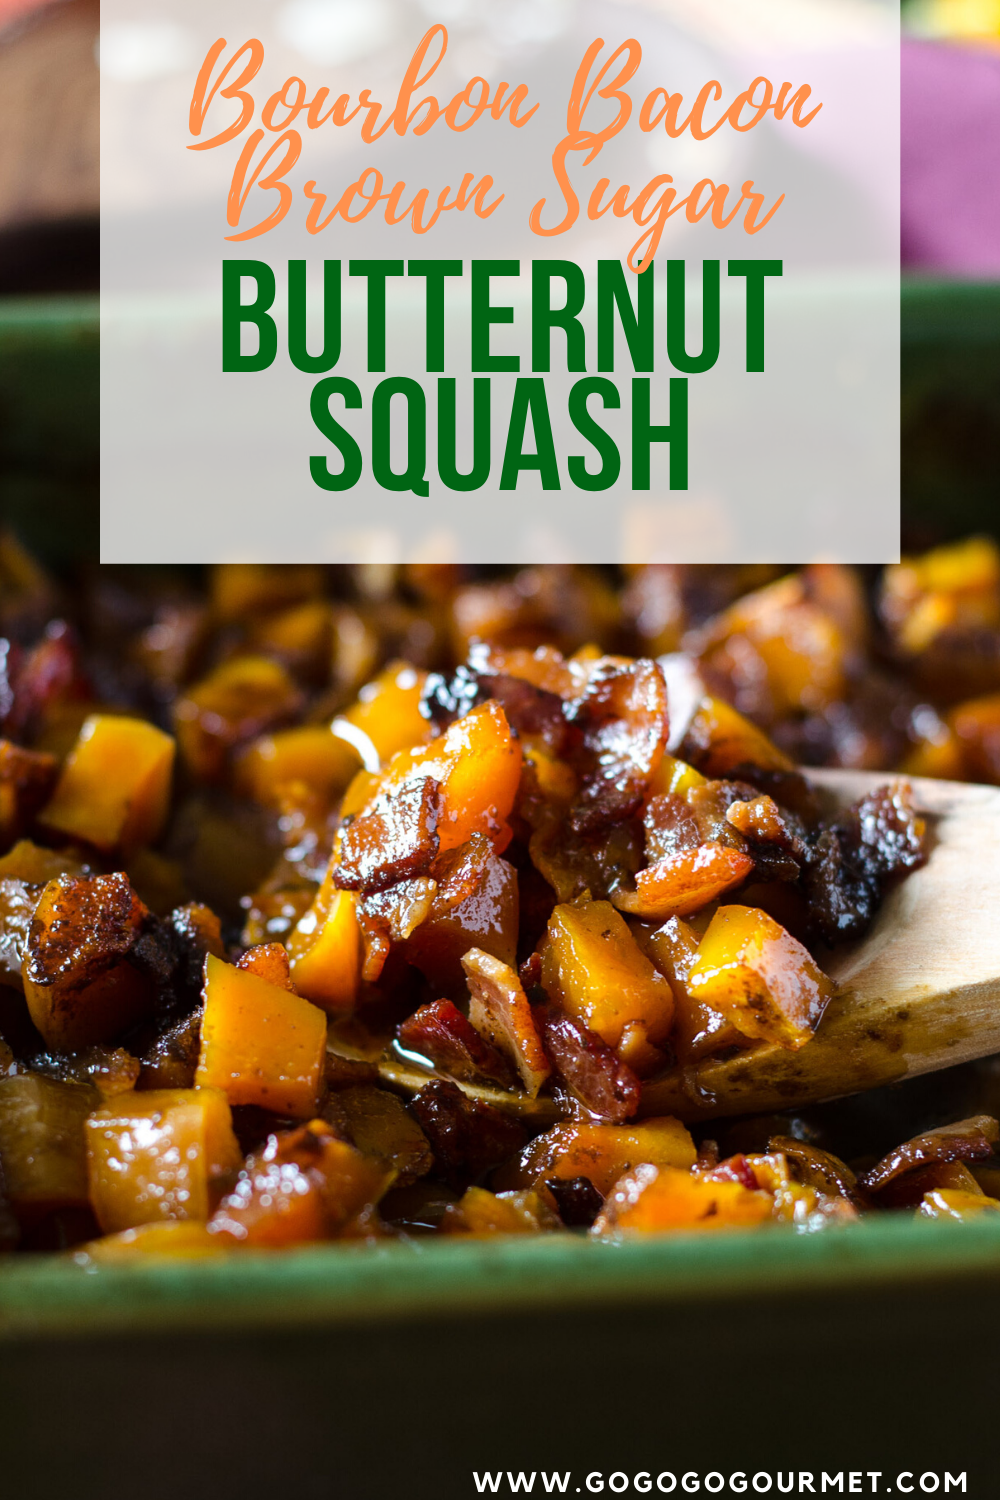 Forget the soup, this Bourbon Bacon Brown Sugar Butternut Squash recipe is the best! It makes a perfect Thanksgiving side, but it's also great served with roasted chicken or pasta! You will never wonder how to cook butternut squash after you've tried this baled recipe! #gogogogourmet #butternutsquash #brownsugarbutternutsquash #bourbonbaconbrownsugarbutternutsquash #thanksgivingsides via @gogogogourmet